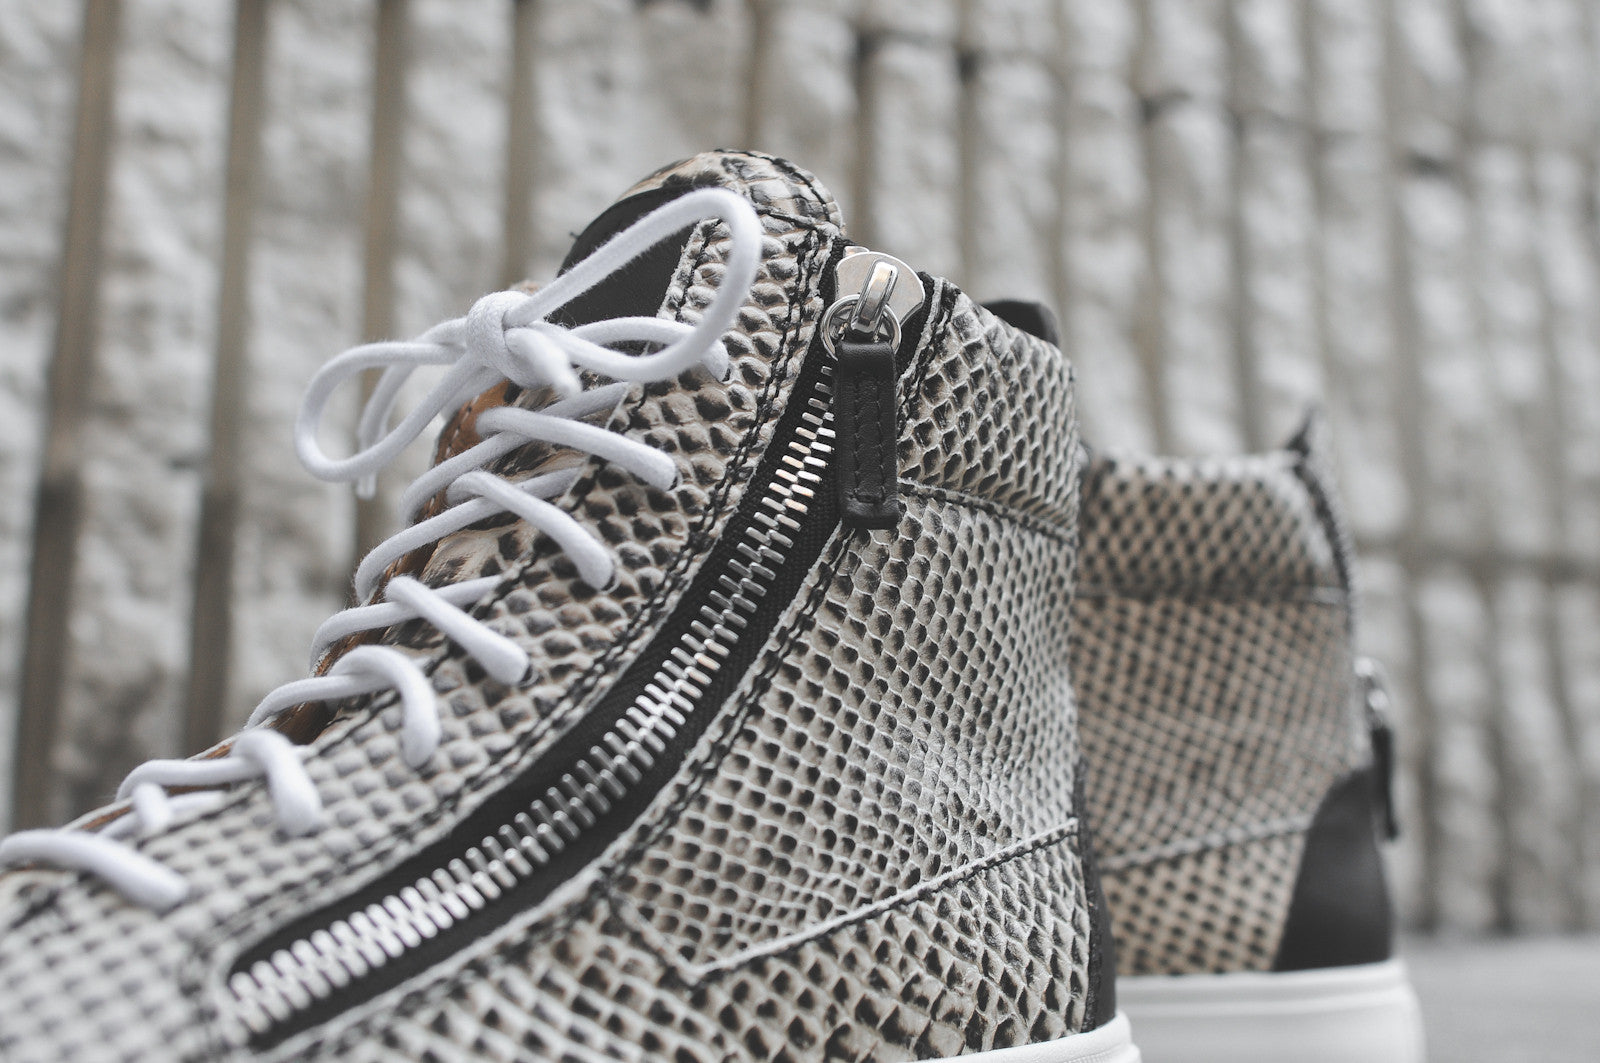 Giuseppe Zanotti WMNS Hi Top Zip-Up - Snakeskin (KITH Exclusive)